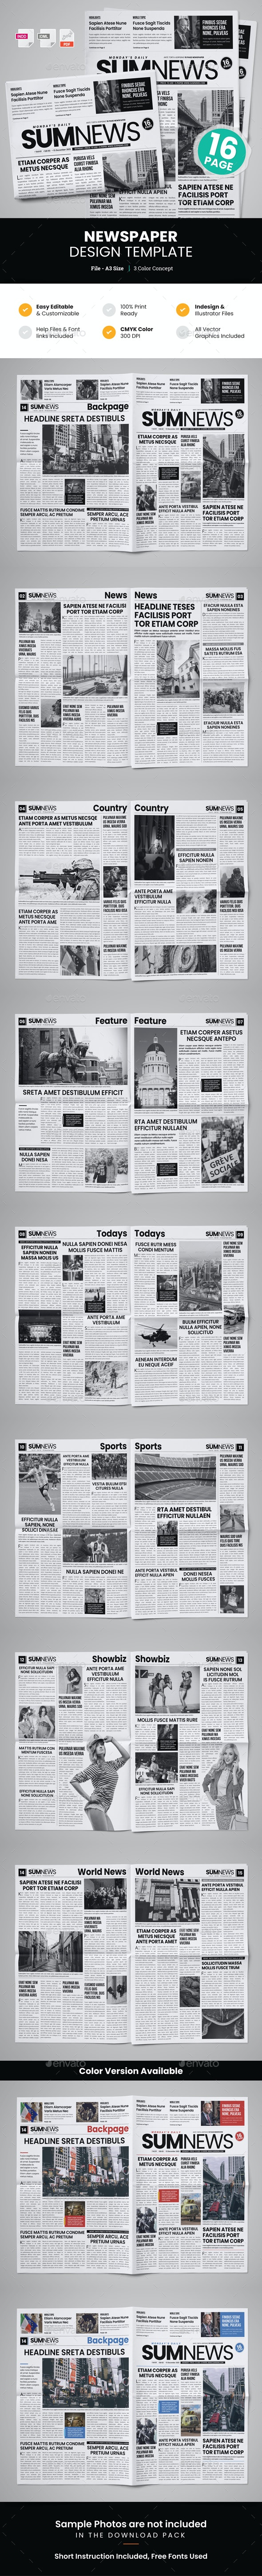 16 Page Newspaper Design v4 - Newsletters Print Templates